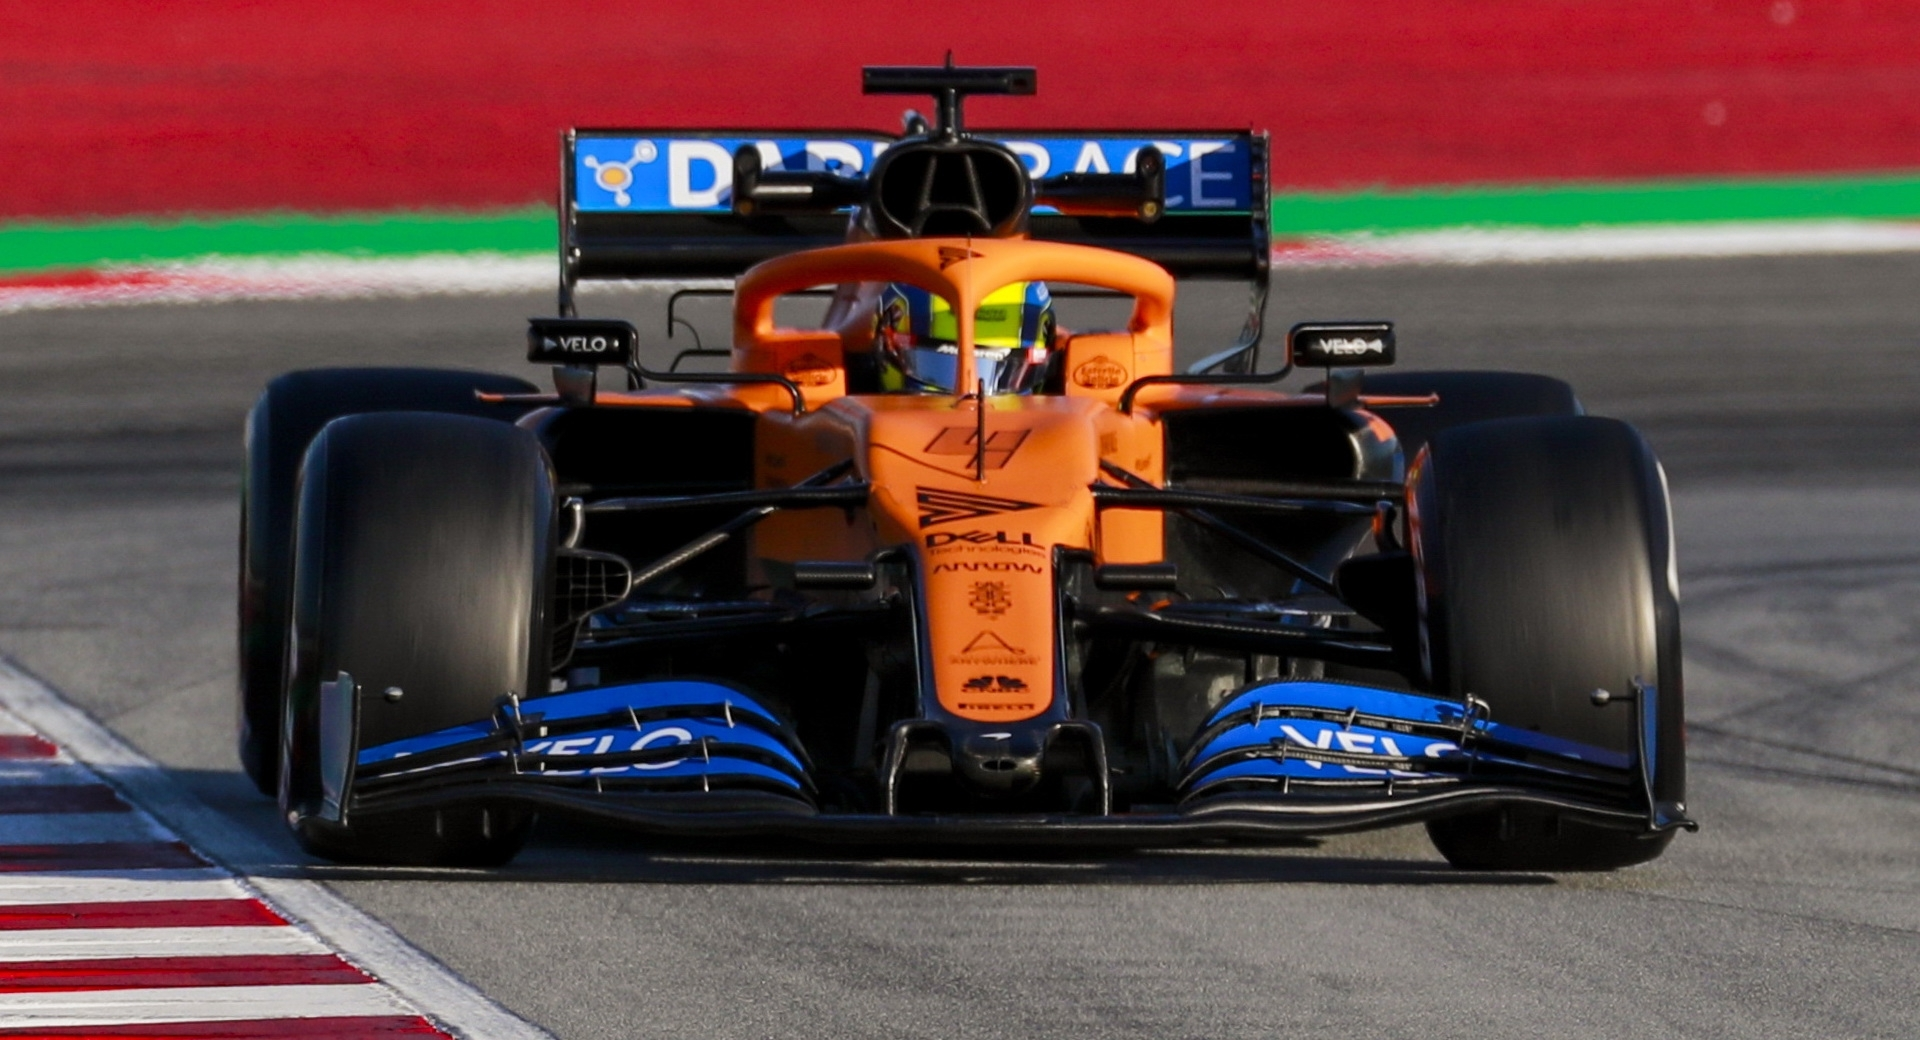 Mclaren Making Big Changes To Their 2021 F1 Car - Will It